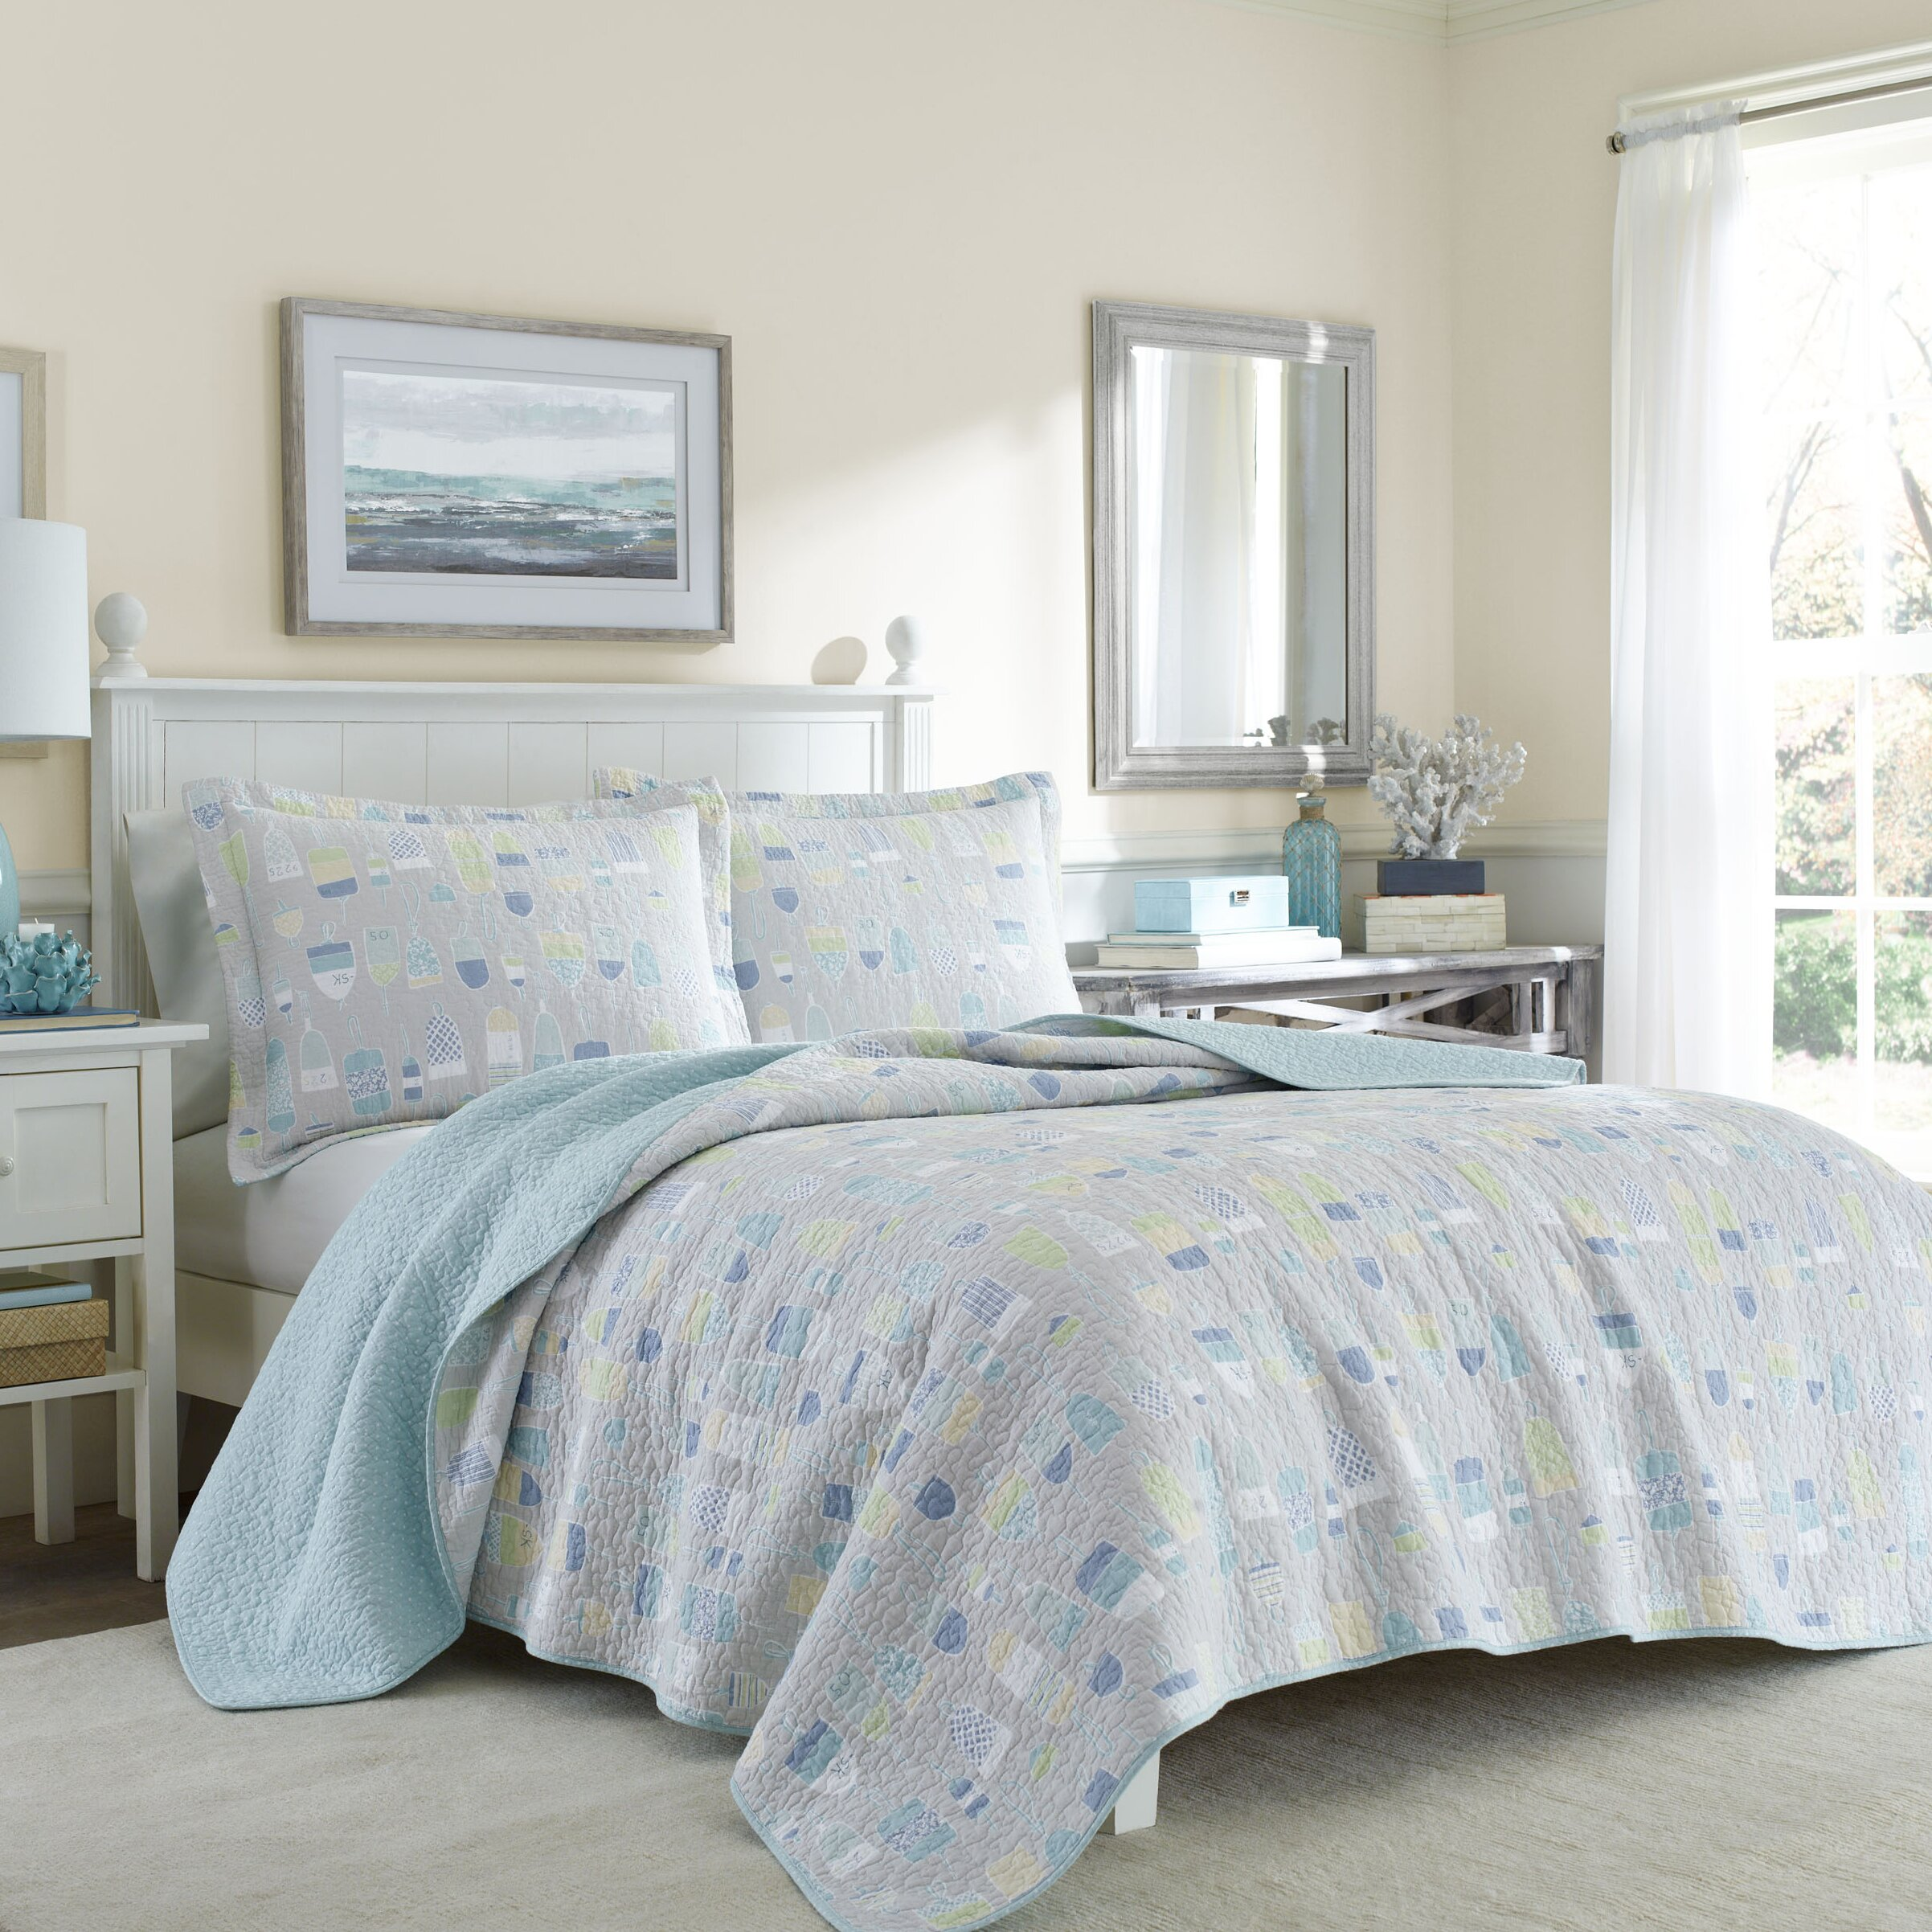 laura ashley home bridgets buoy quilt set reviews wayfair. Black Bedroom Furniture Sets. Home Design Ideas